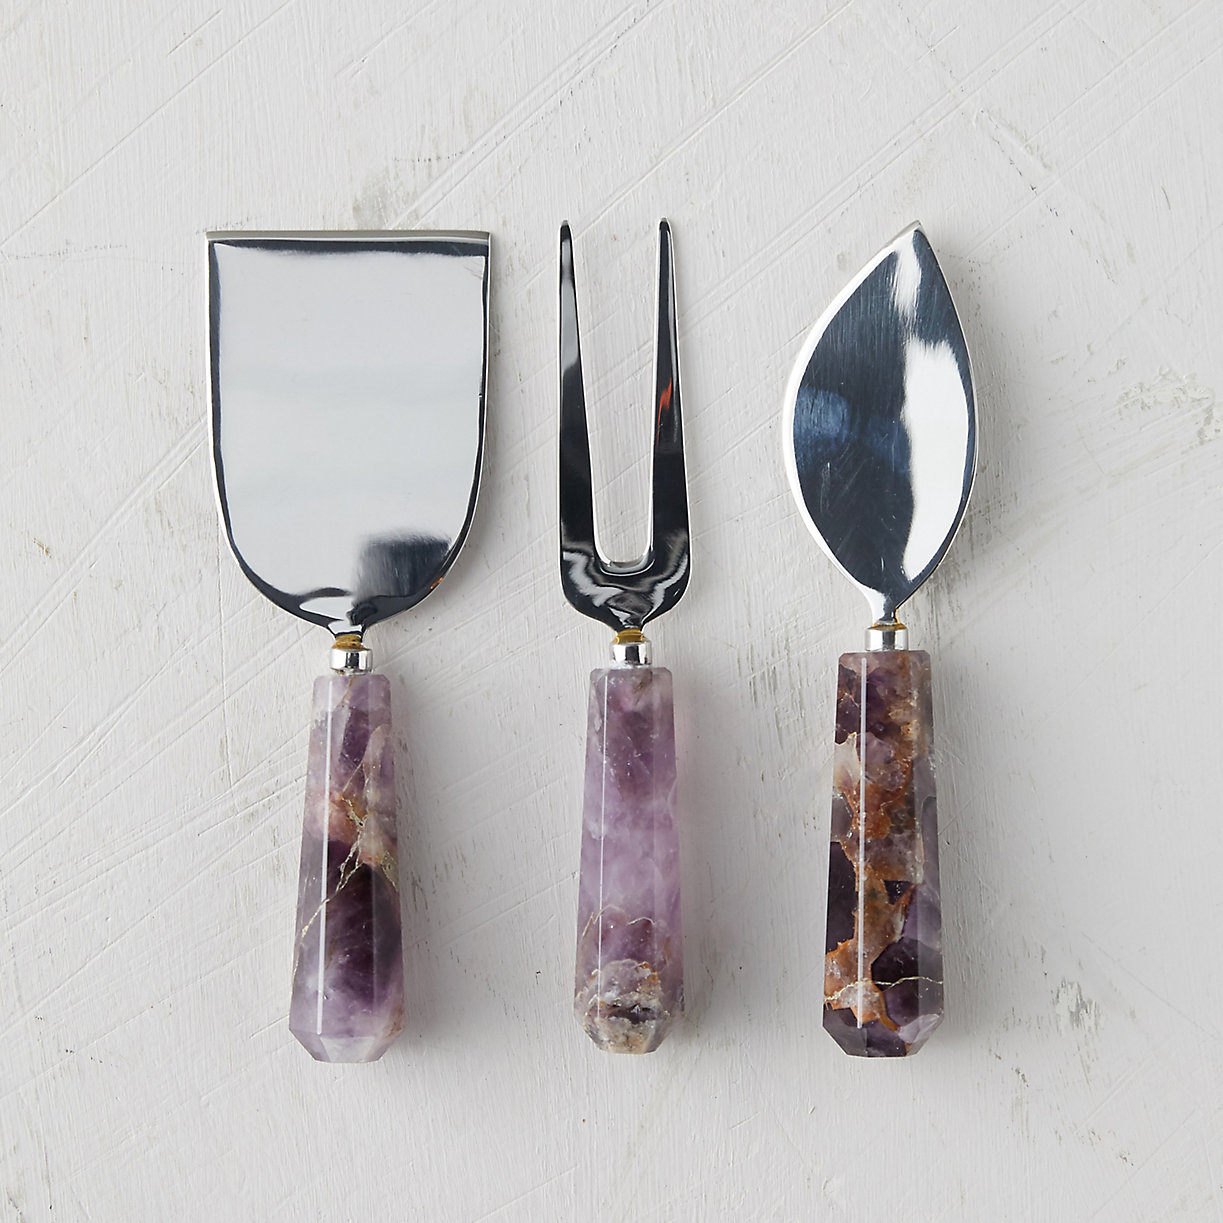 Gifts for Foodies: Amethyst Handle Cheese Knife Set at Terrain